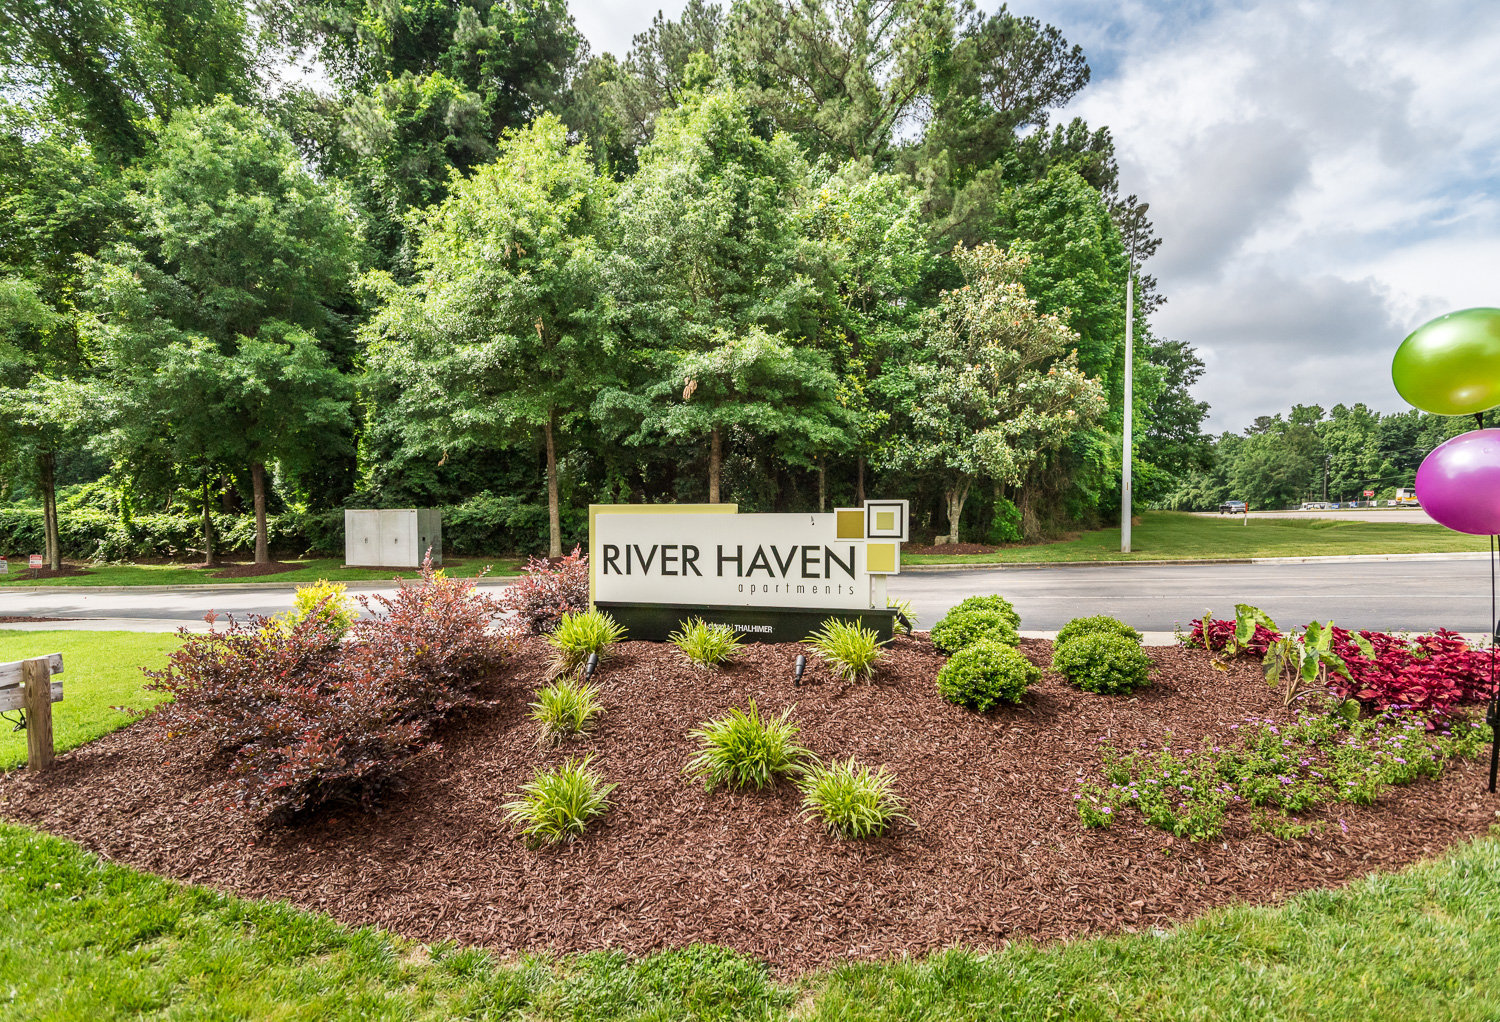 Image of River Haven Apartments in Raleigh, North Carolina